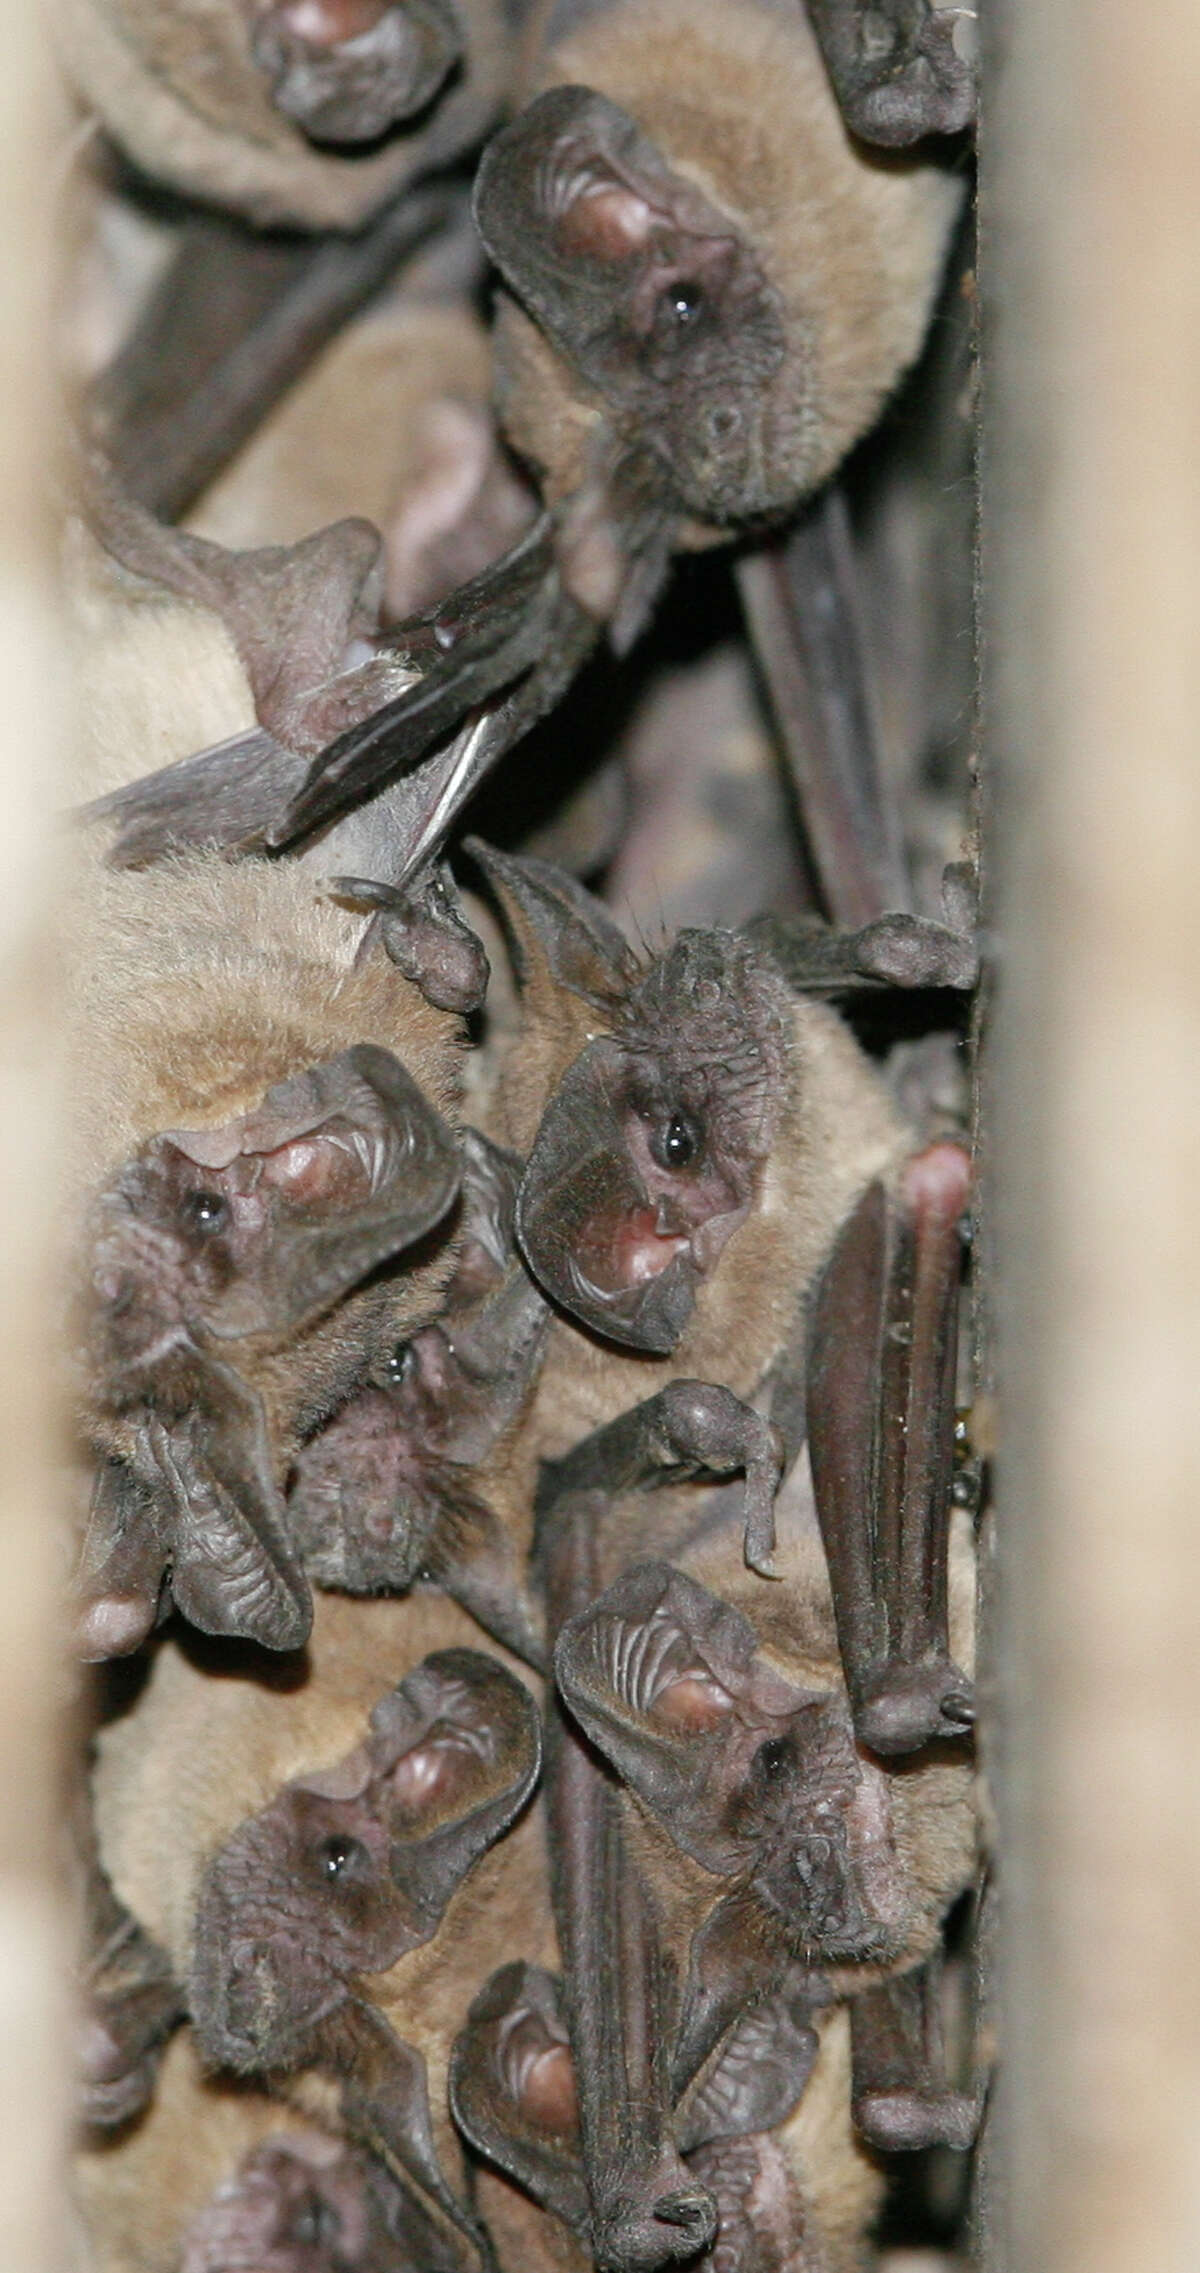 Before Harvey, hundreds of thorusands of Mexican free-tailed bats lived under the Waugh Drive bridge.